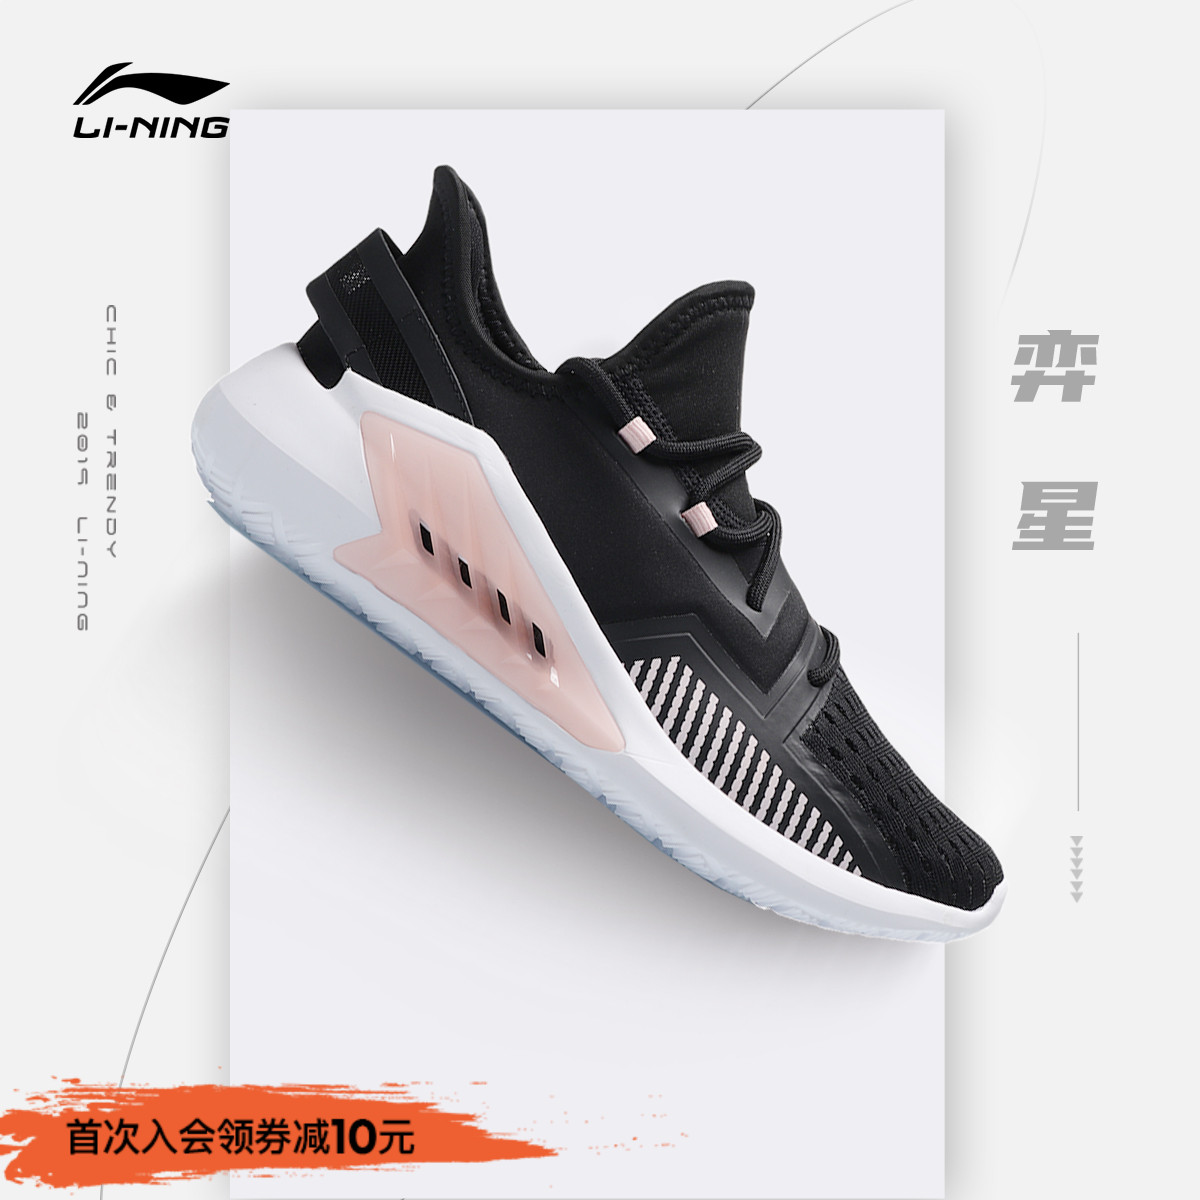 Brilliance Yu Hei Li Ning casual shoes women's shoes summer official website game star Li Ning cloud light running shoes breathable sneakers